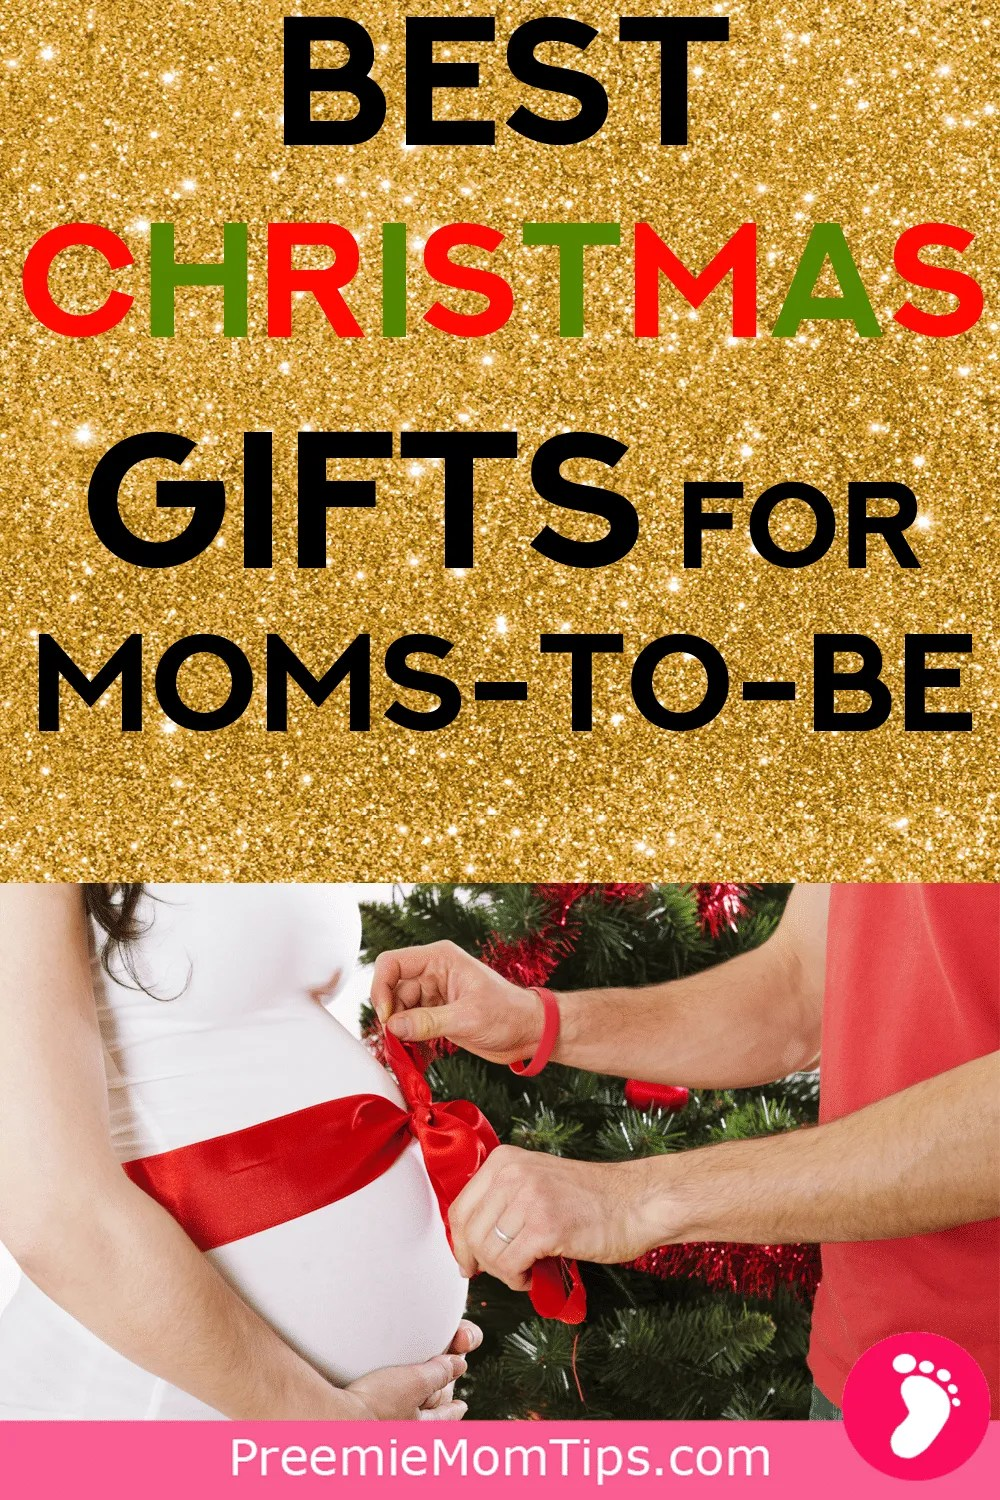 Celebrate the Holiday season with these gifts for pregnant women that are useful. Check out these gift ideas for moms to be and you can't go wrong!